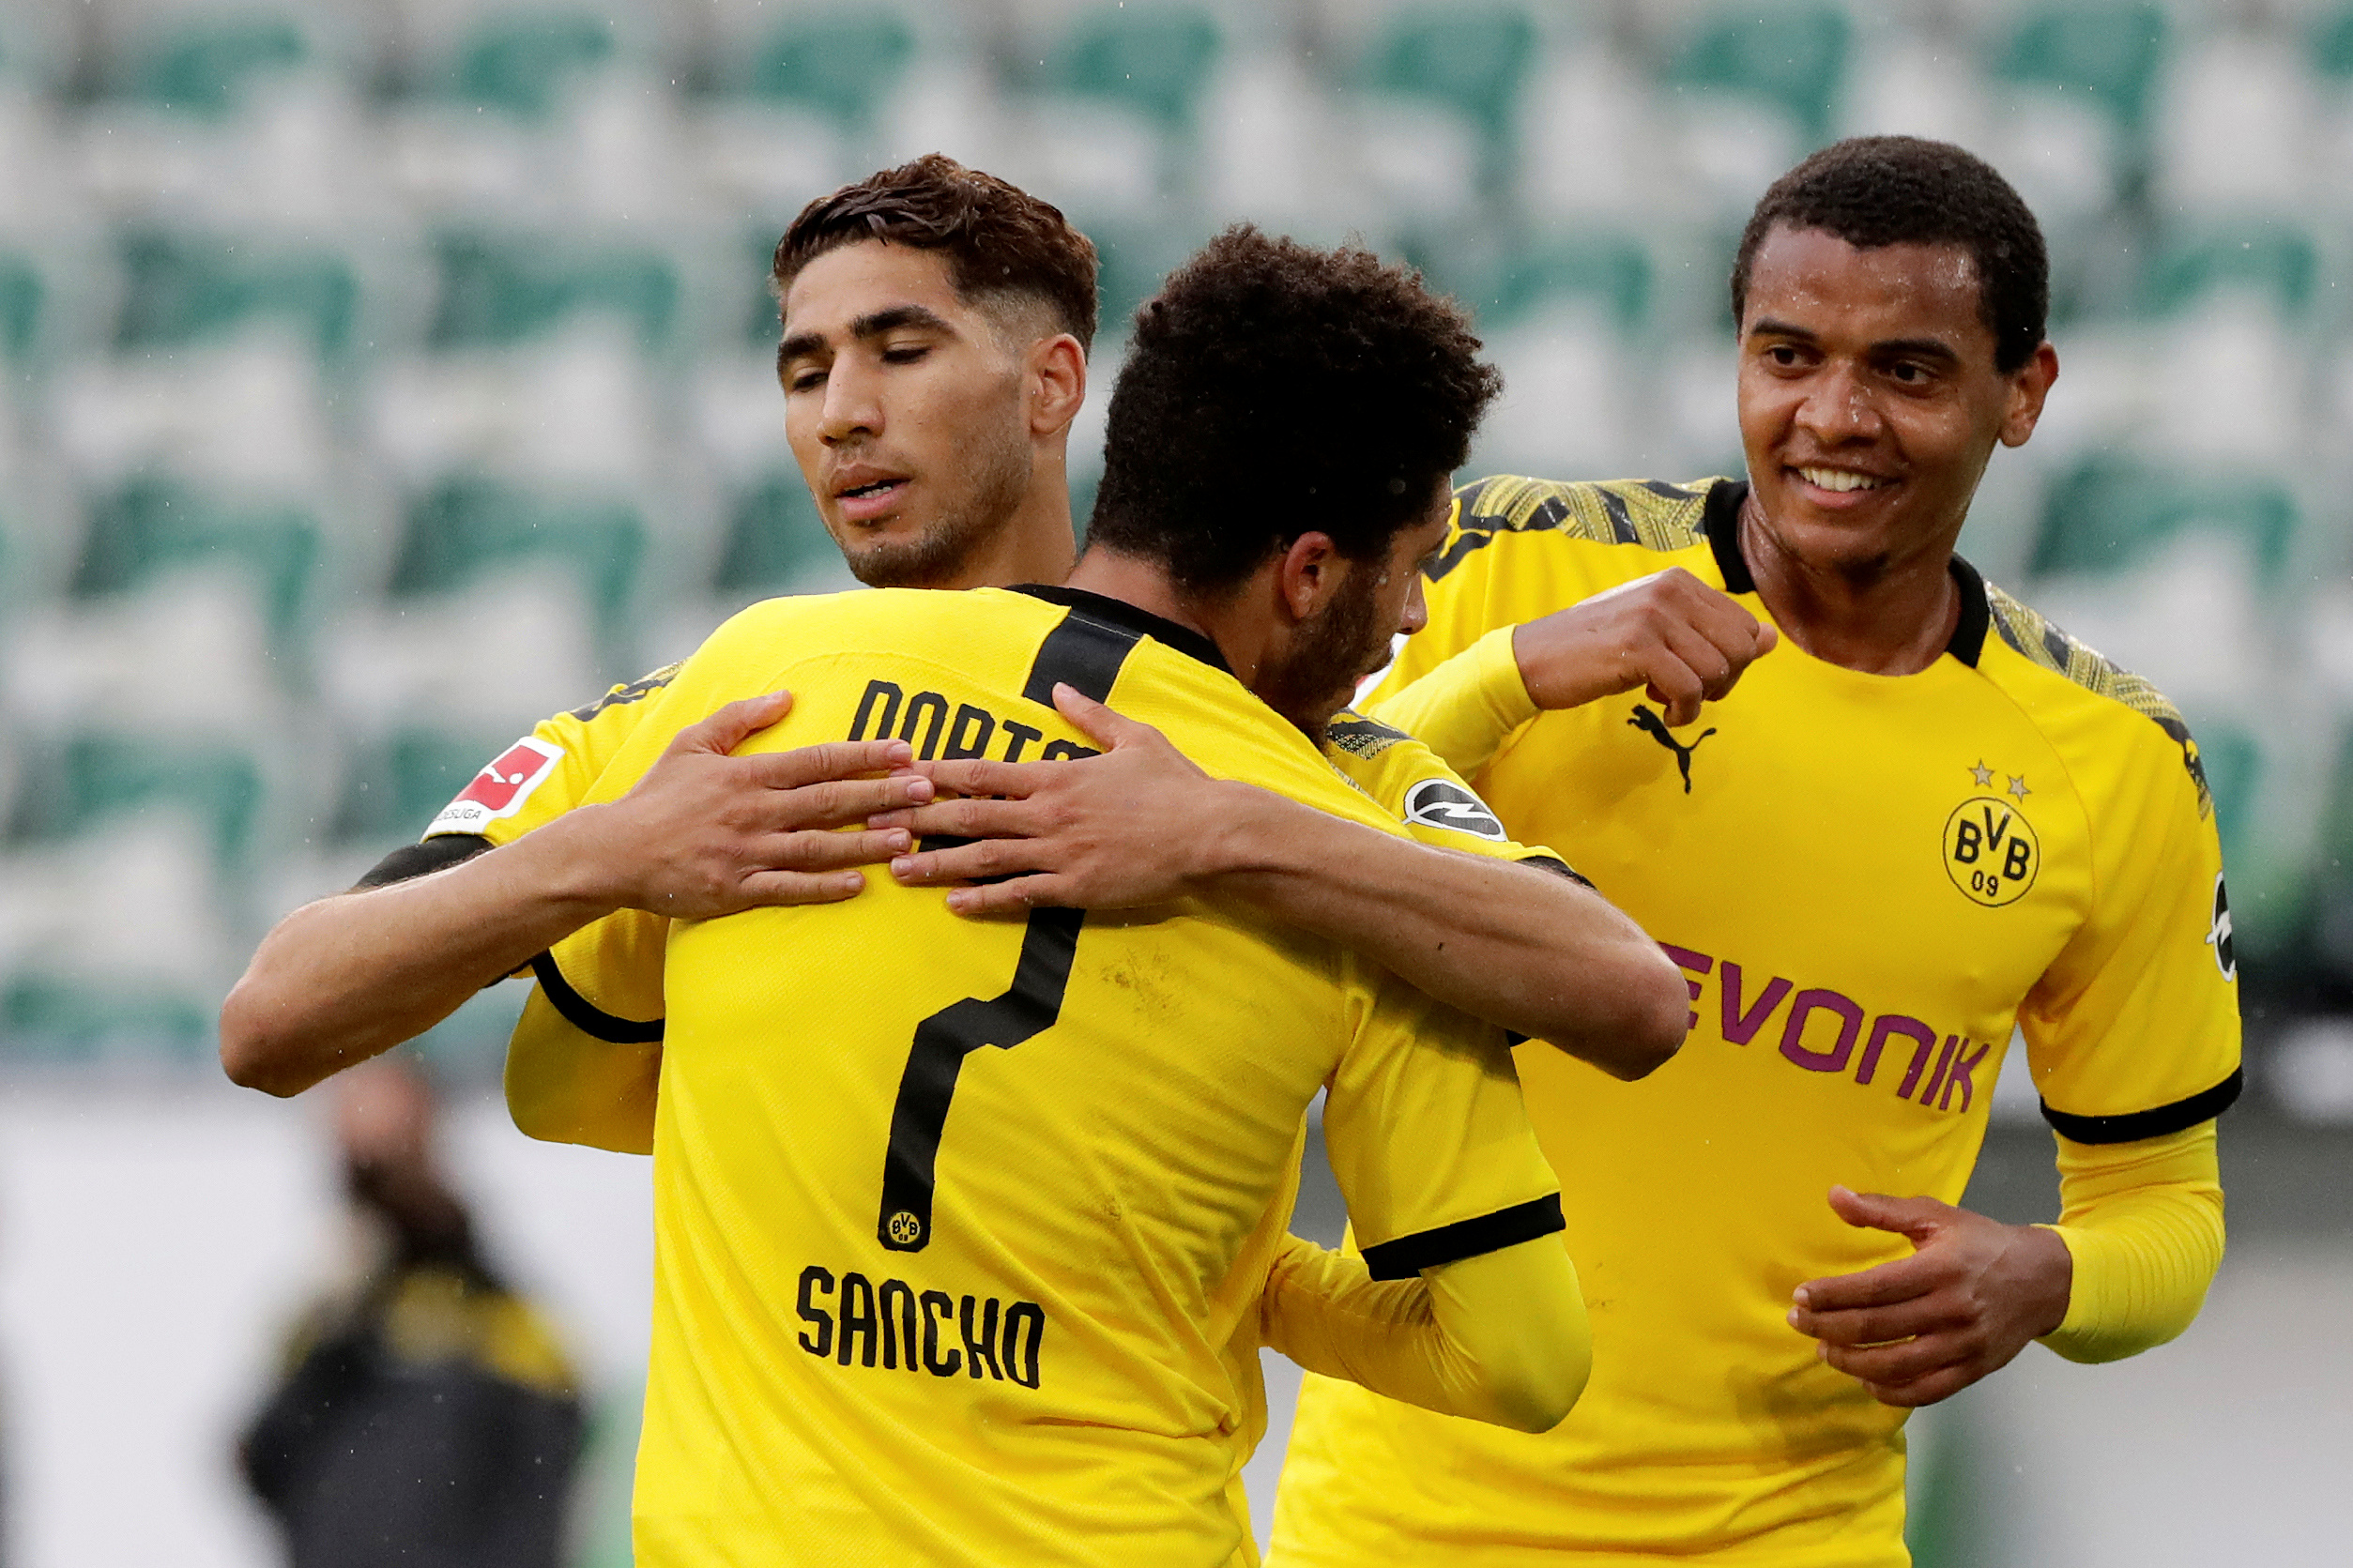 Borussia Dortmund's Achraf Hakimi celebrates scoring their second goal with Jadon Sancho, as play resumes behind closed doors following the outbreak of the coronavirus disease (COVID-19) during the Bundesliga match between VfL Wolfsburg and Borussia Dortmund, at Volkswagen Arena, in Wolfsburg, Germany, on May 23, 2020. Photo: Michael Sohn/Pool via Reuters